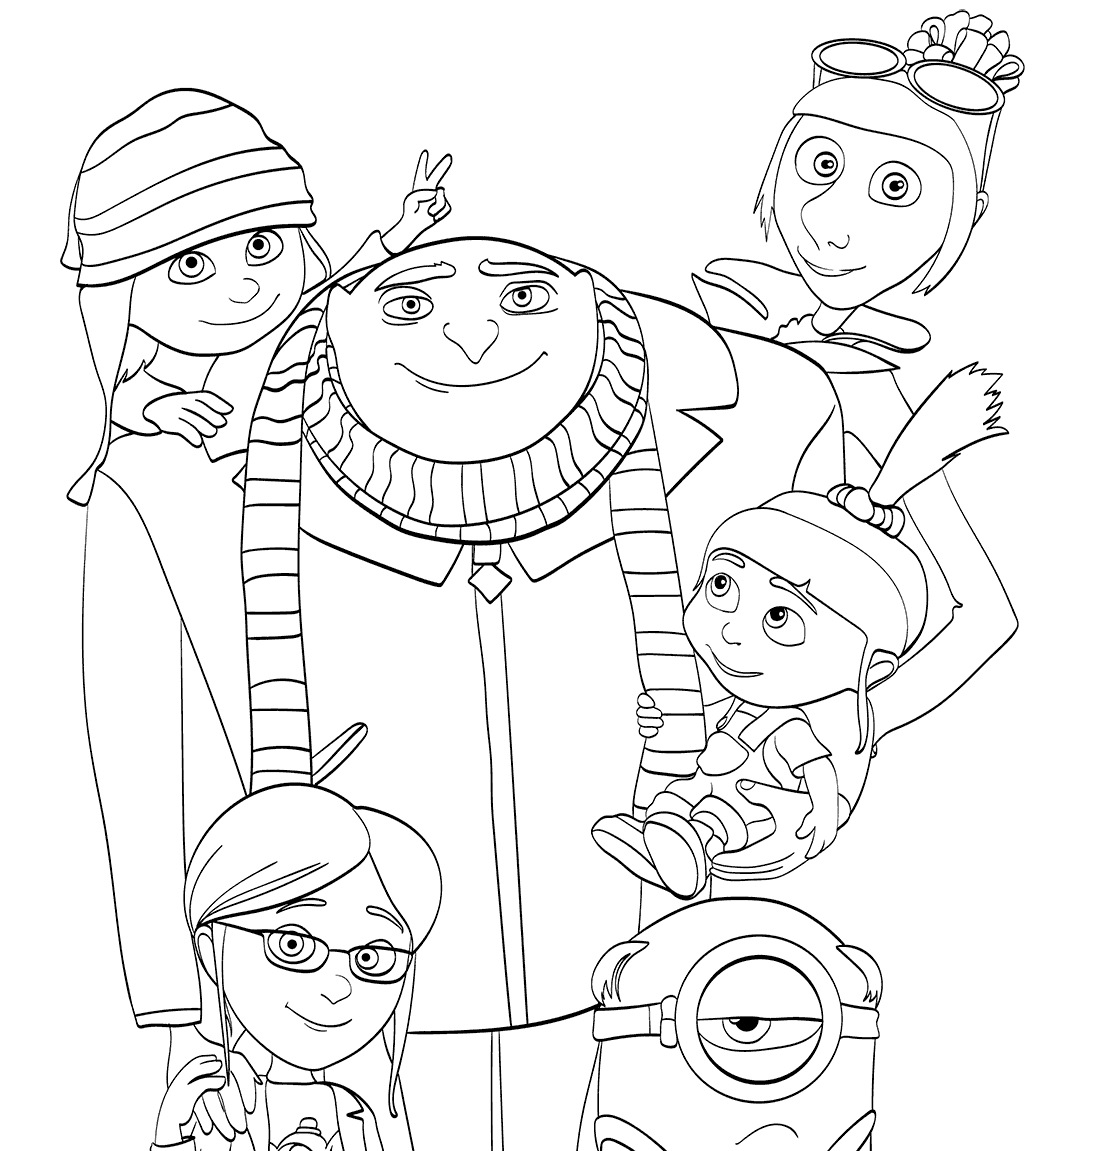 despicable me coloring pages free despicable me 3 minions coloring page free printable me despicable free coloring pages